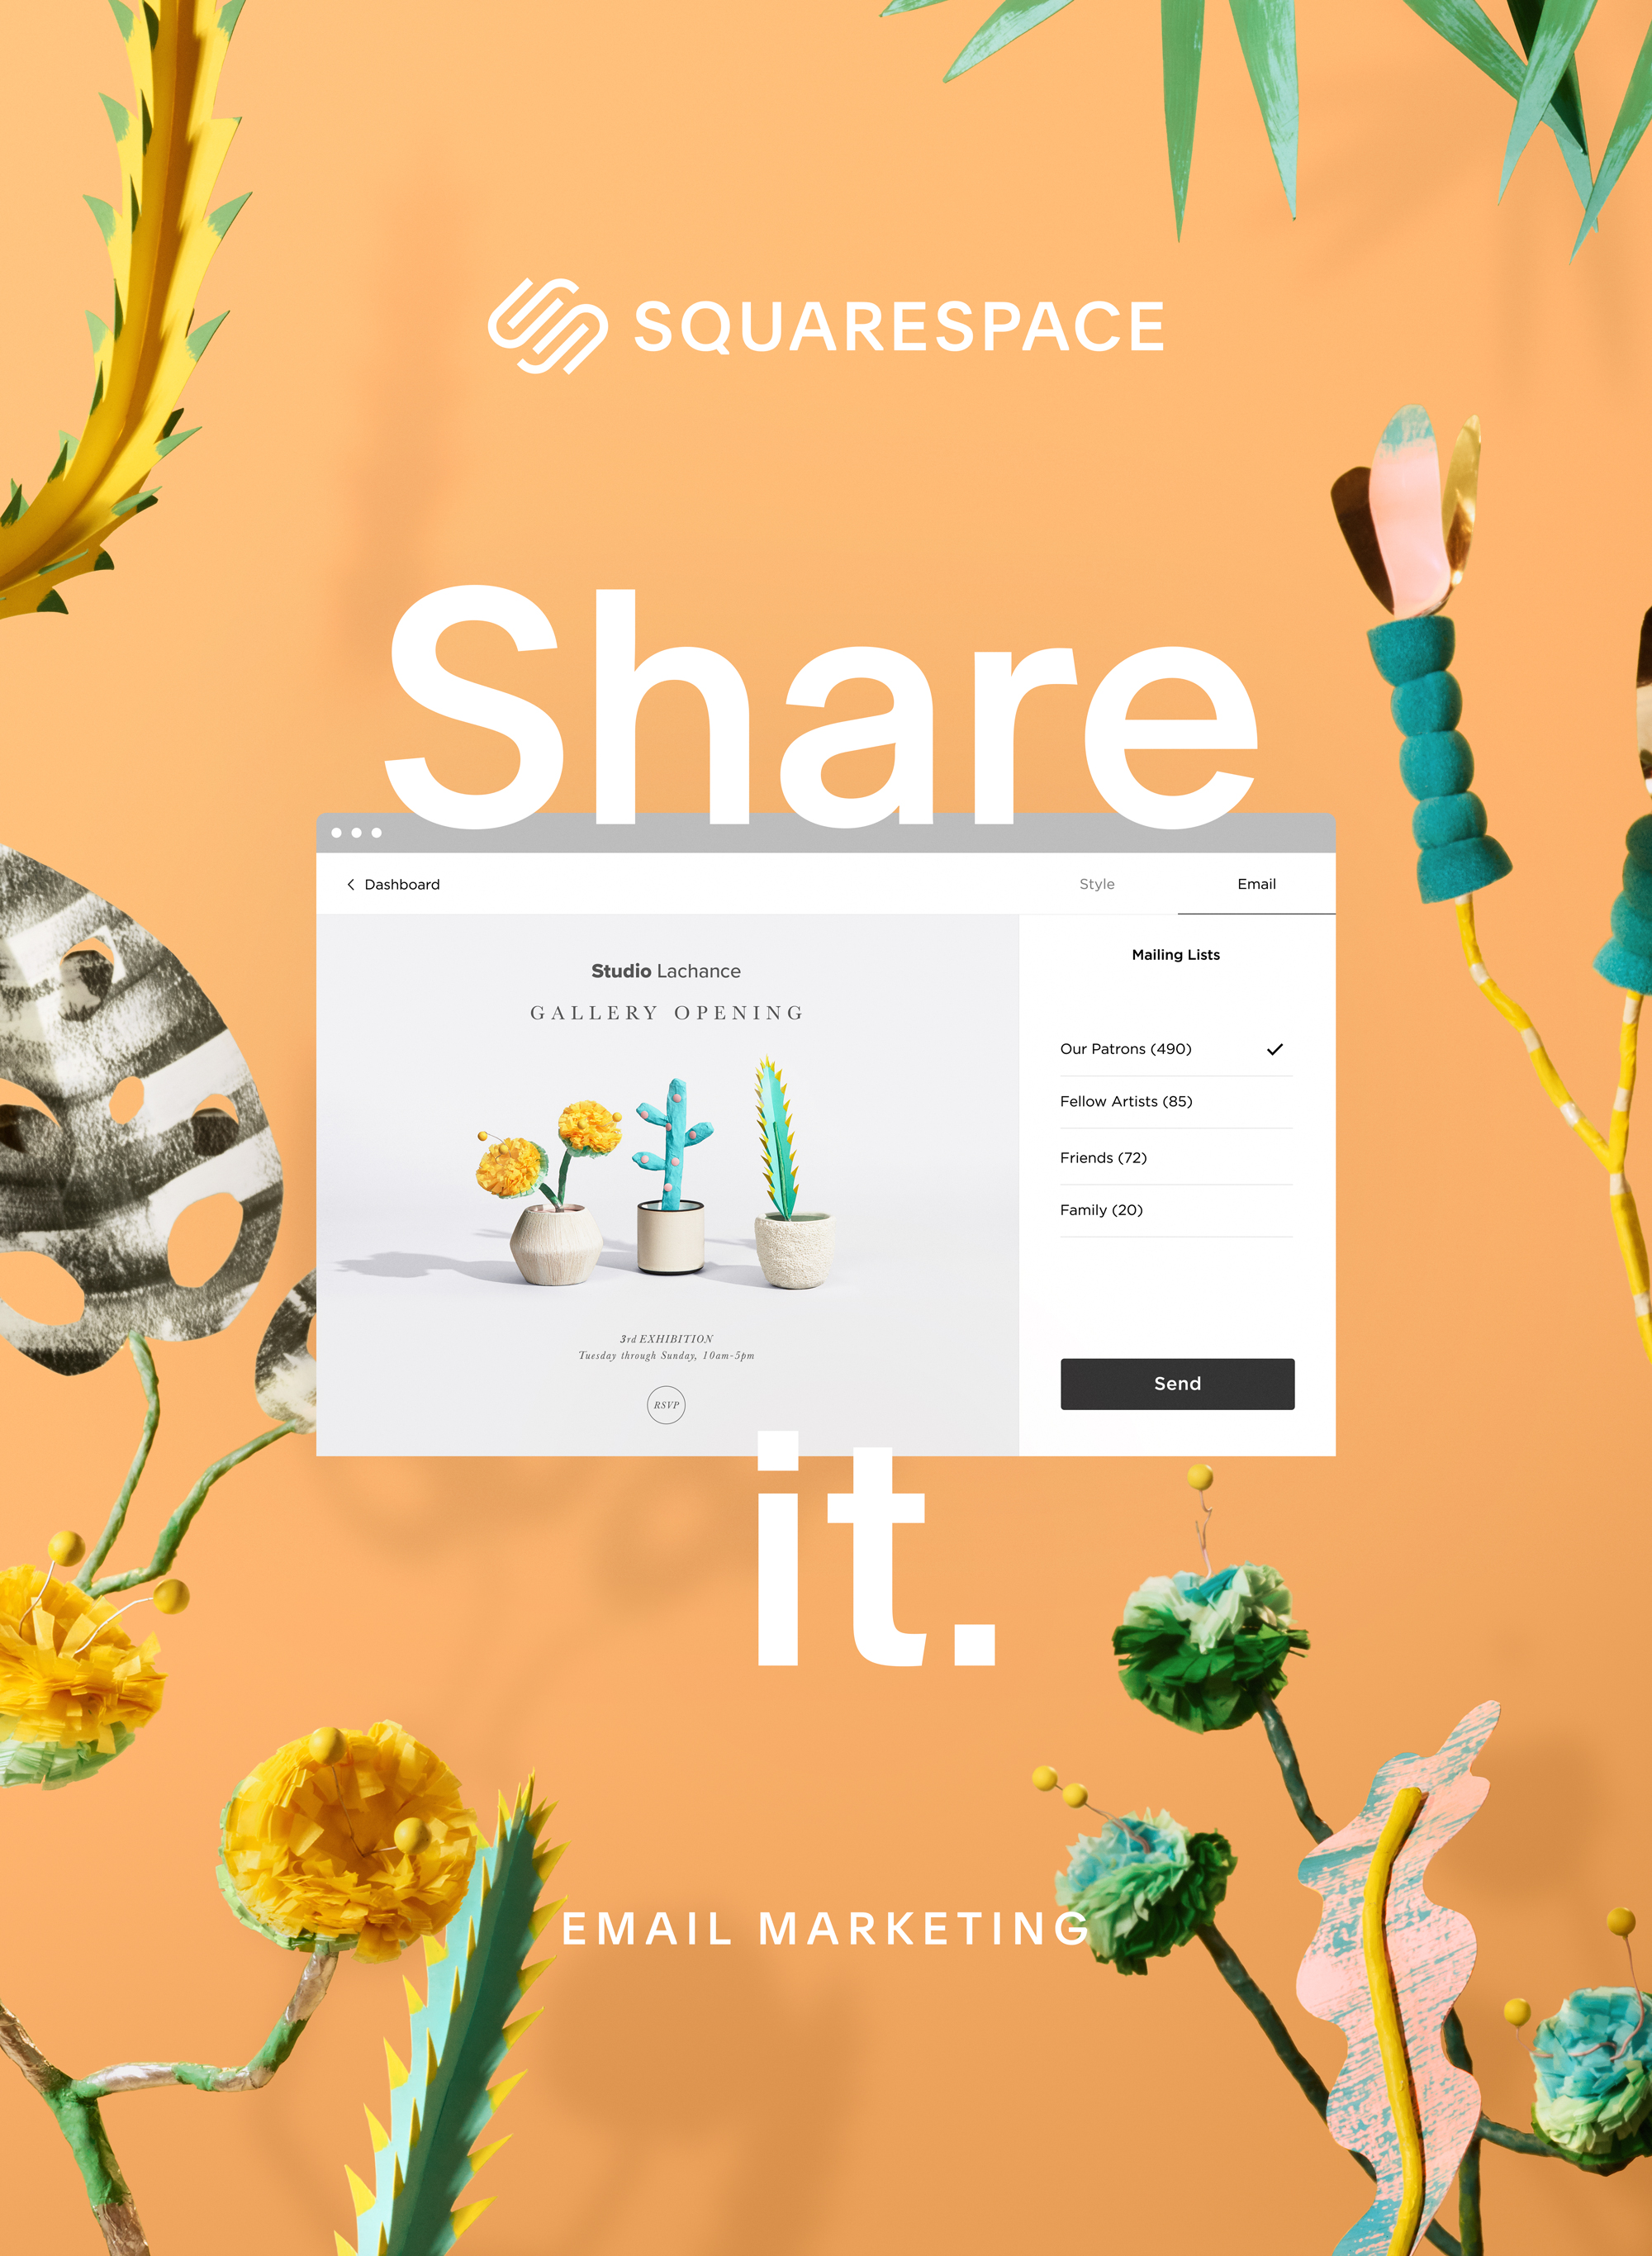 SQUARESPACE: ALL IN ONE